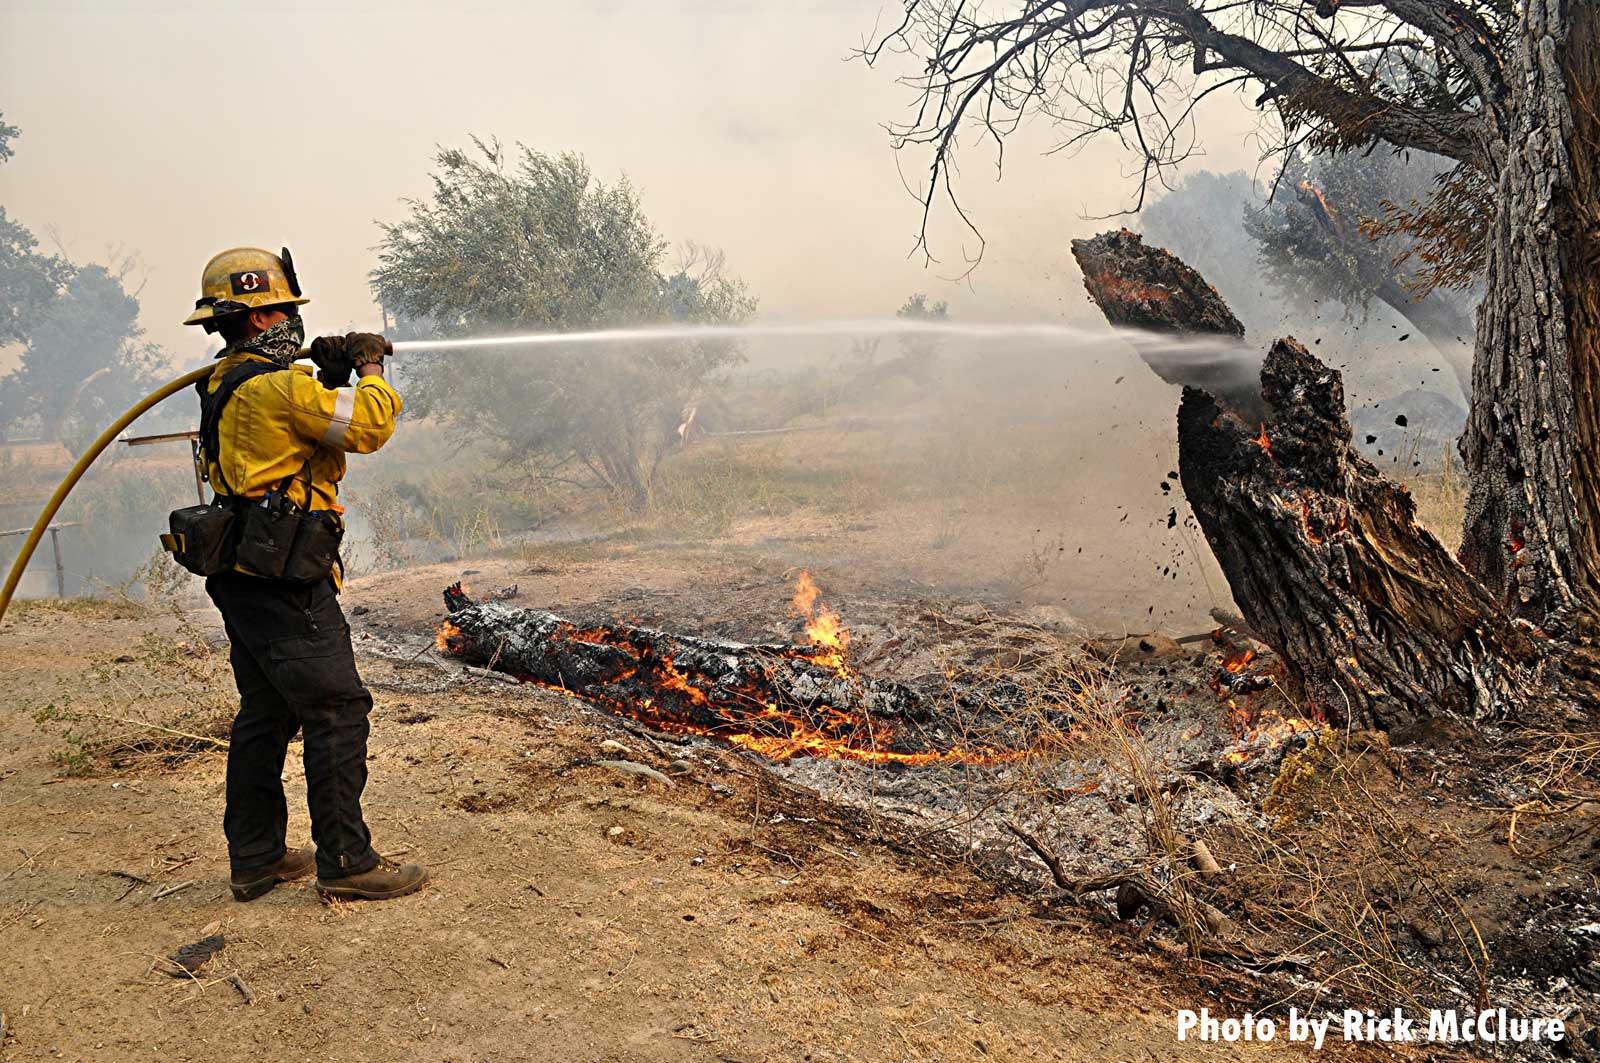 A firefighter applies water on the flames